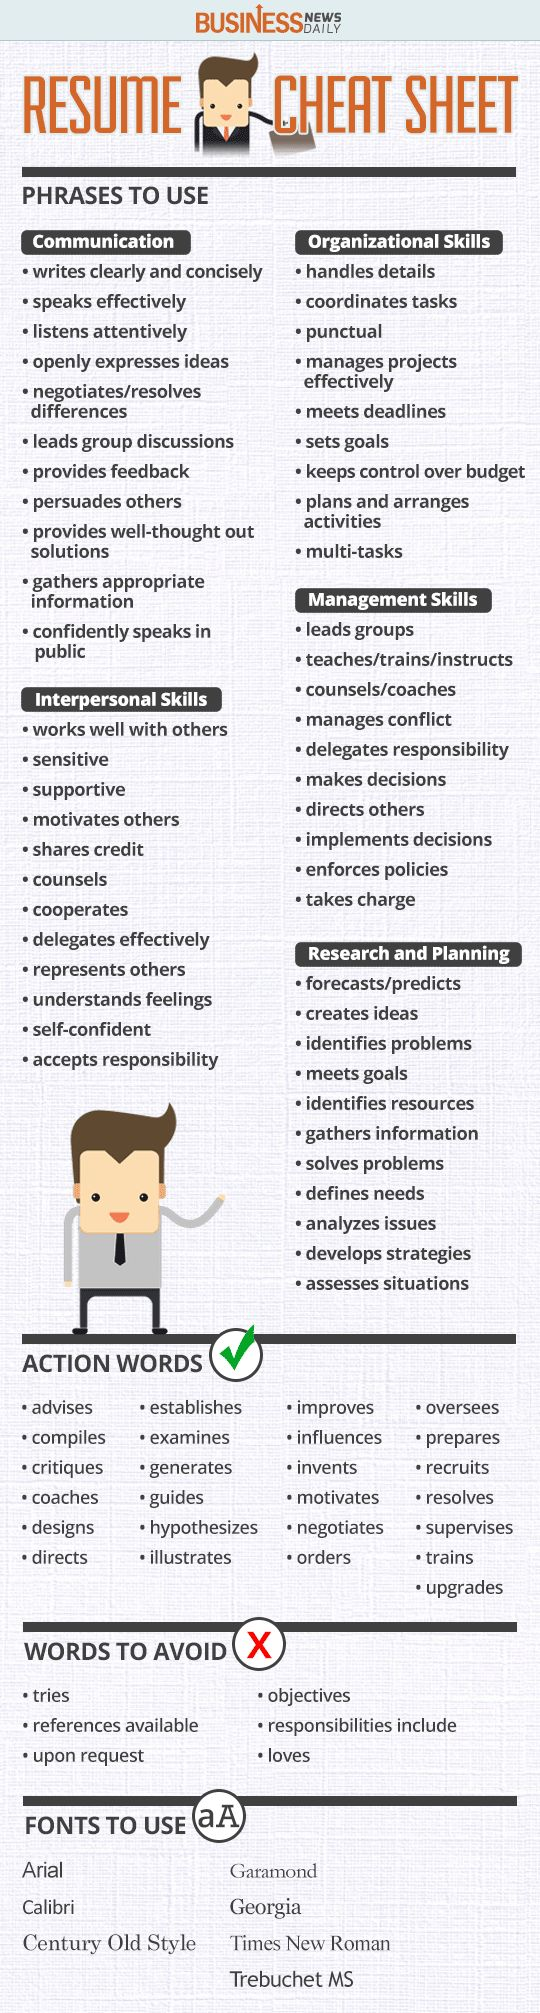 Opposenewapstandardsus  Prepossessing  Ideas About Resume On Pinterest  Cv Format Resume  With Gorgeous Resume Cheat Sheet Infographic Andrews Almost Done With A Complete Unit On Employment Which With Agreeable Resume For Job Fair Also Lab Skills Resume In Addition Electrician Resumes And Construction Project Manager Resume Sample As Well As Law School Graduate Resume Additionally How To Prepare A Resume For A Job From Pinterestcom With Opposenewapstandardsus  Gorgeous  Ideas About Resume On Pinterest  Cv Format Resume  With Agreeable Resume Cheat Sheet Infographic Andrews Almost Done With A Complete Unit On Employment Which And Prepossessing Resume For Job Fair Also Lab Skills Resume In Addition Electrician Resumes From Pinterestcom